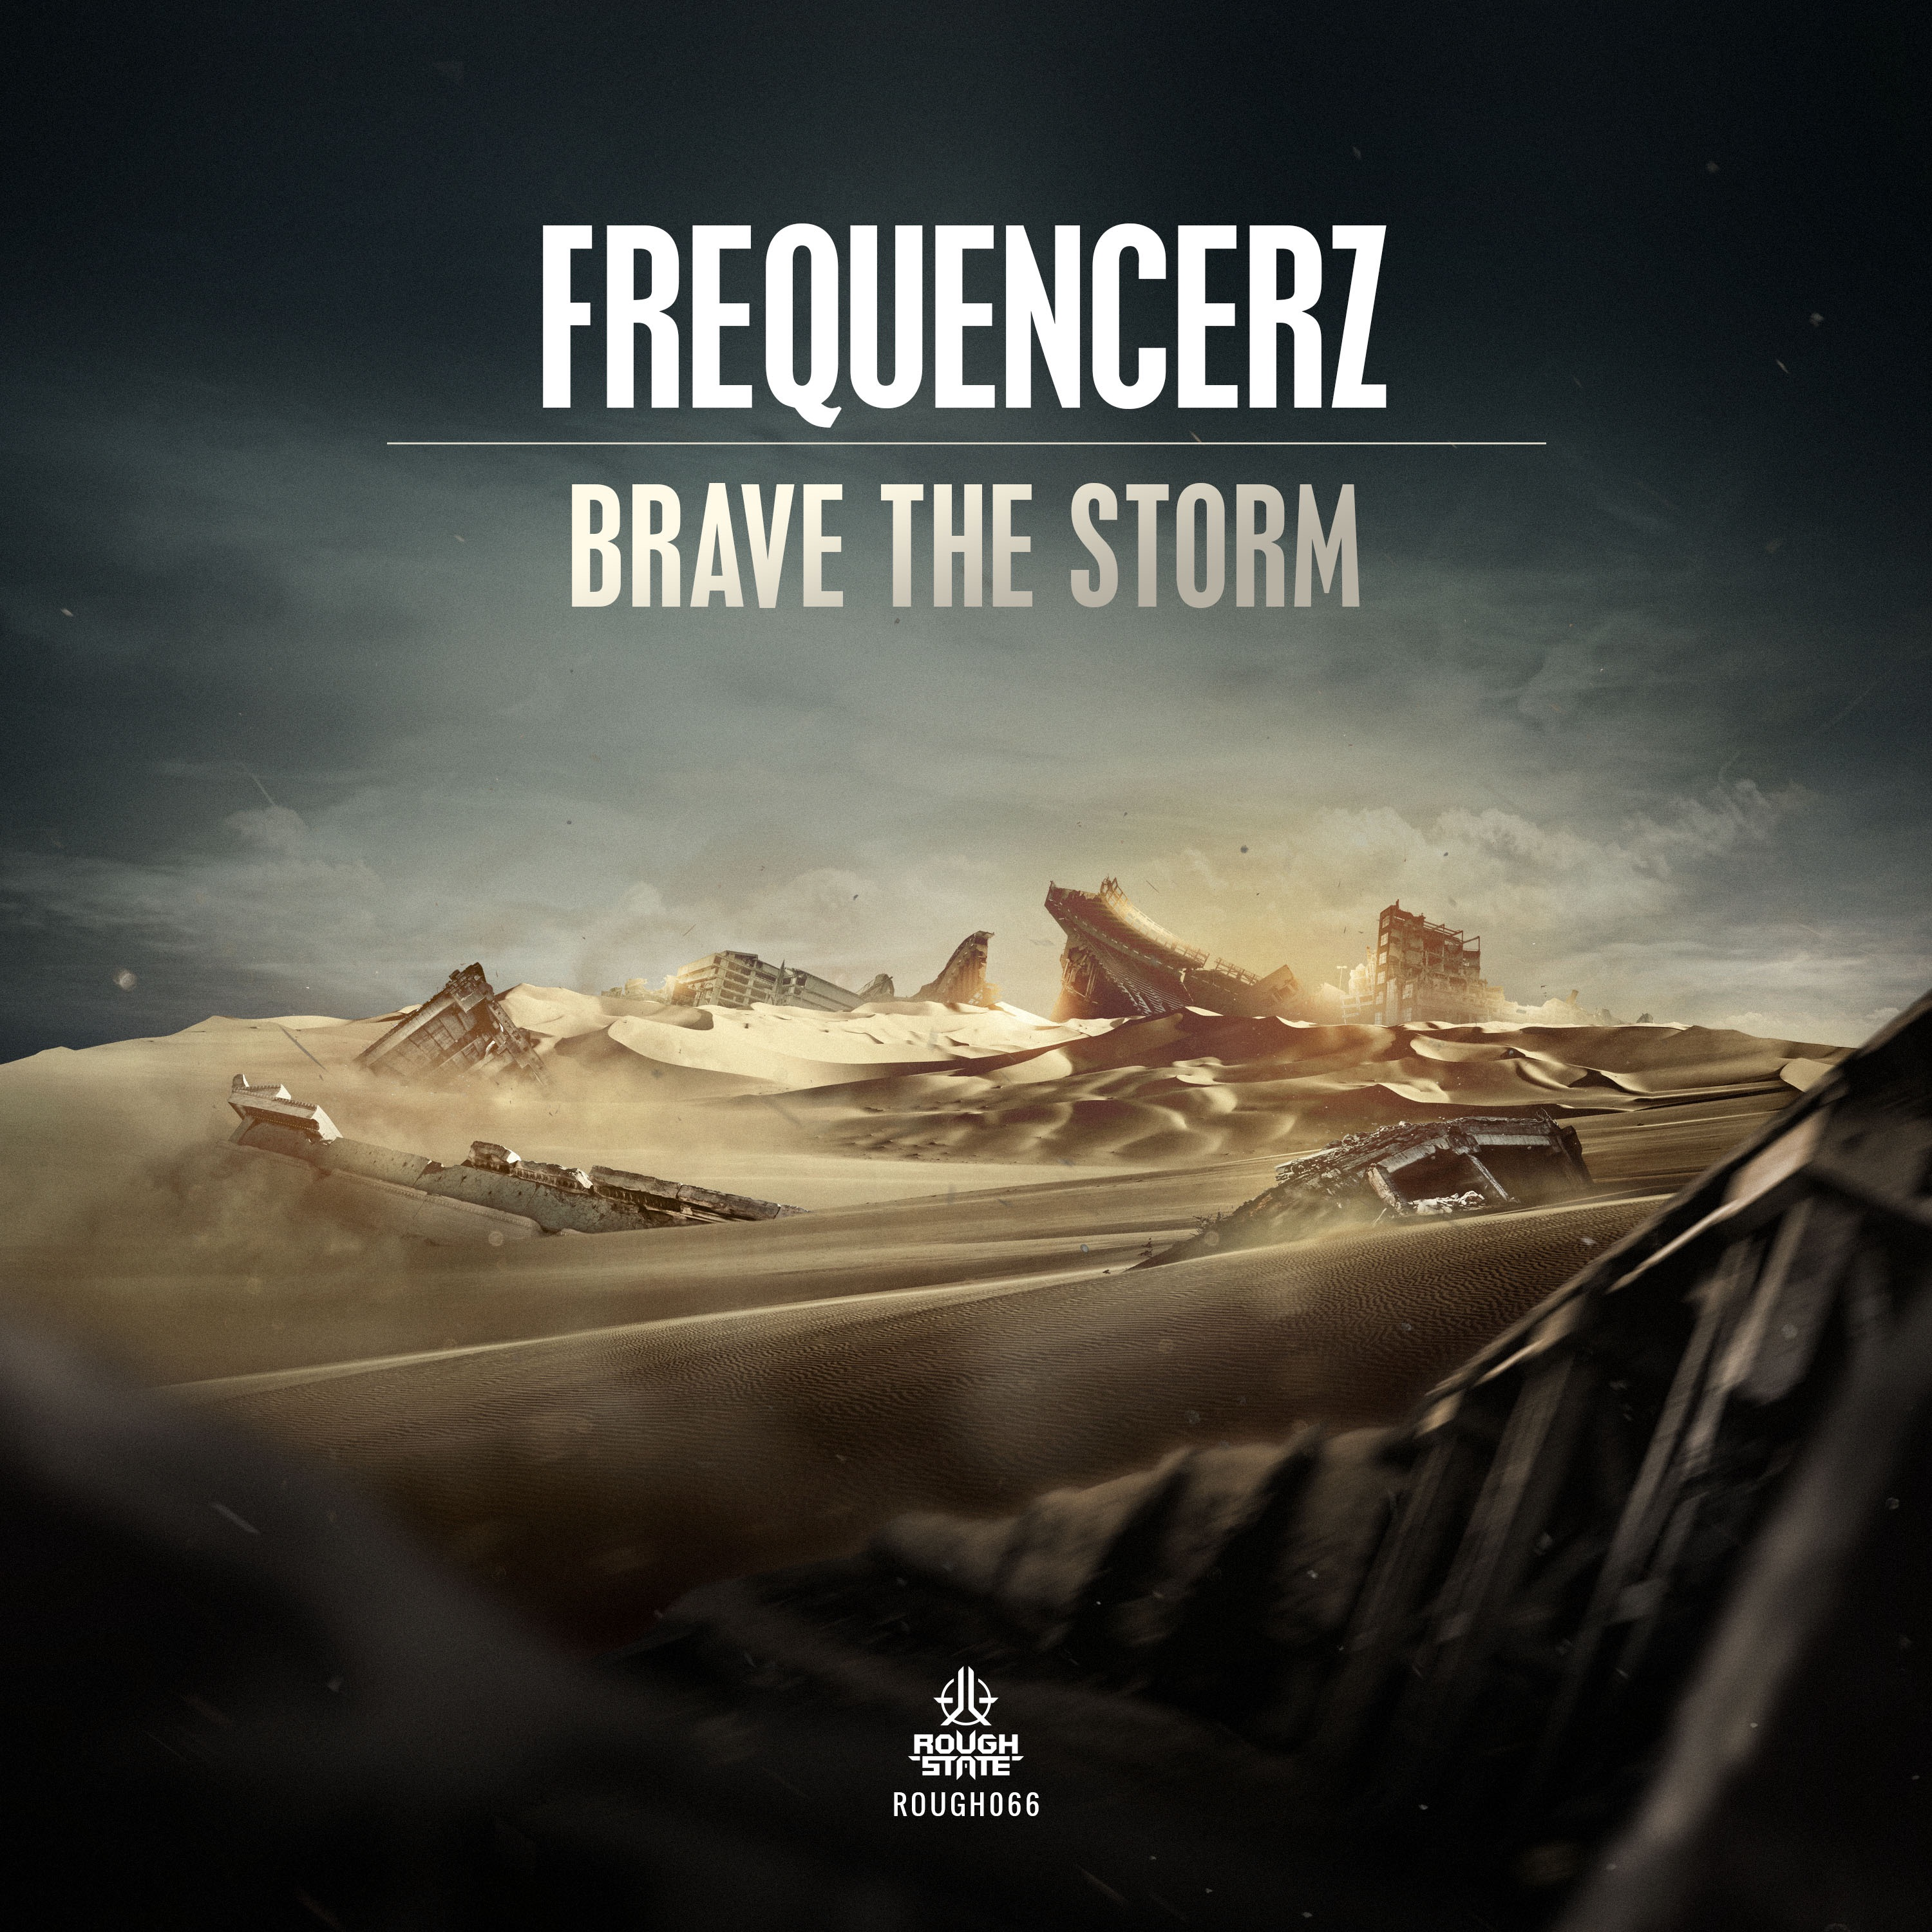 Frequencerz - Brave The Storm [ROUGHSTATE MUSIC] ROUGH066